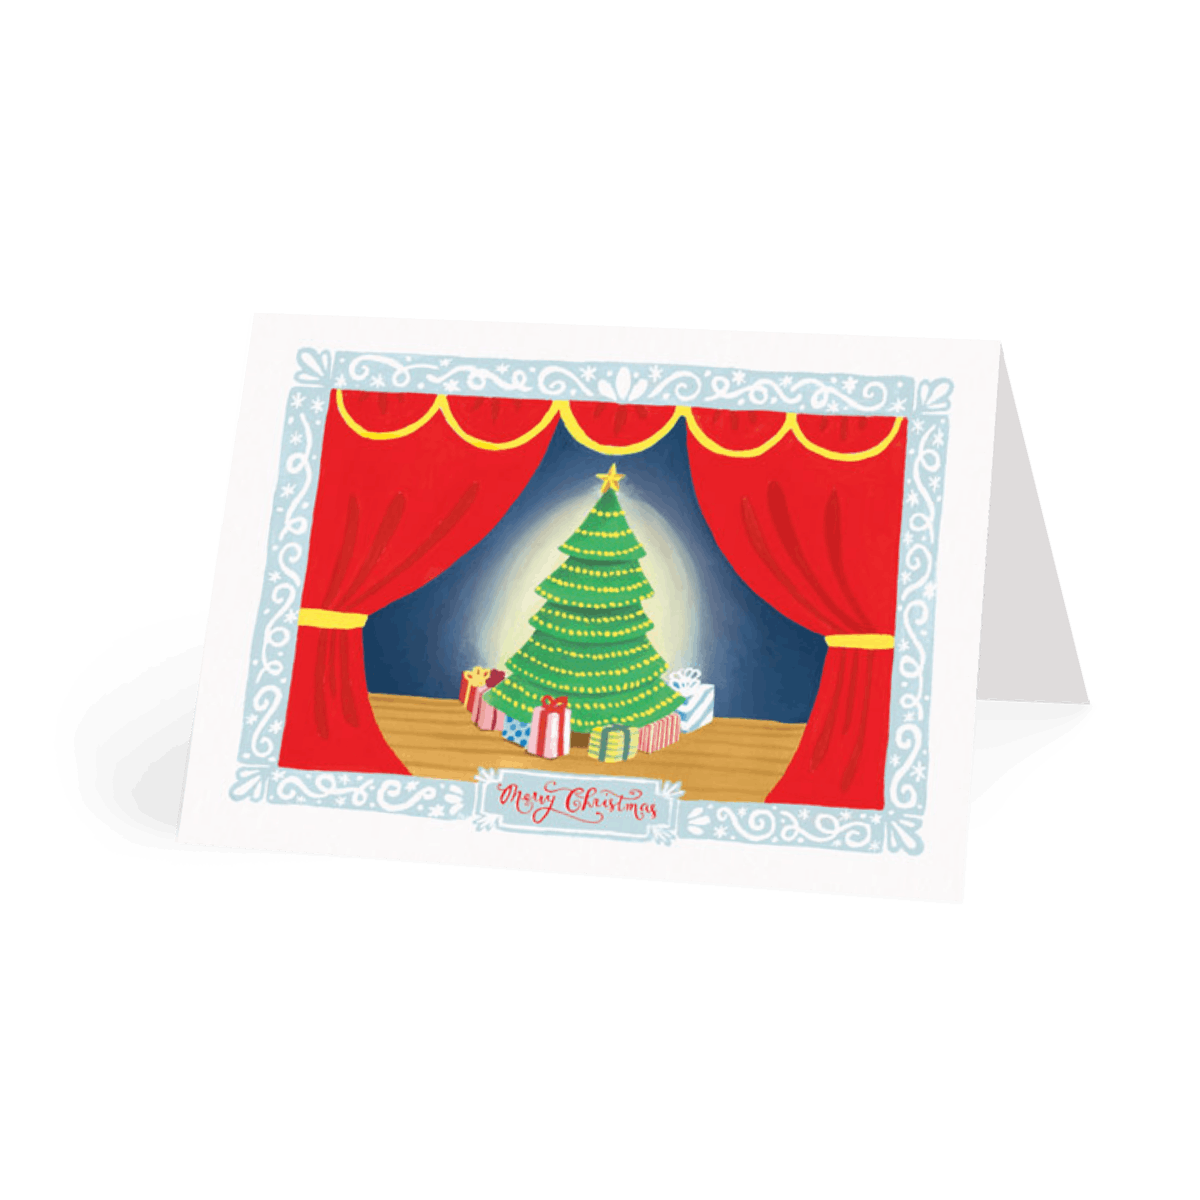 Https%3a%2f%2fwww.papier.com%2fproduct image%2f10466%2f14%2fchristmas scene 2668 front 1472210691.png?ixlib=rb 1.1